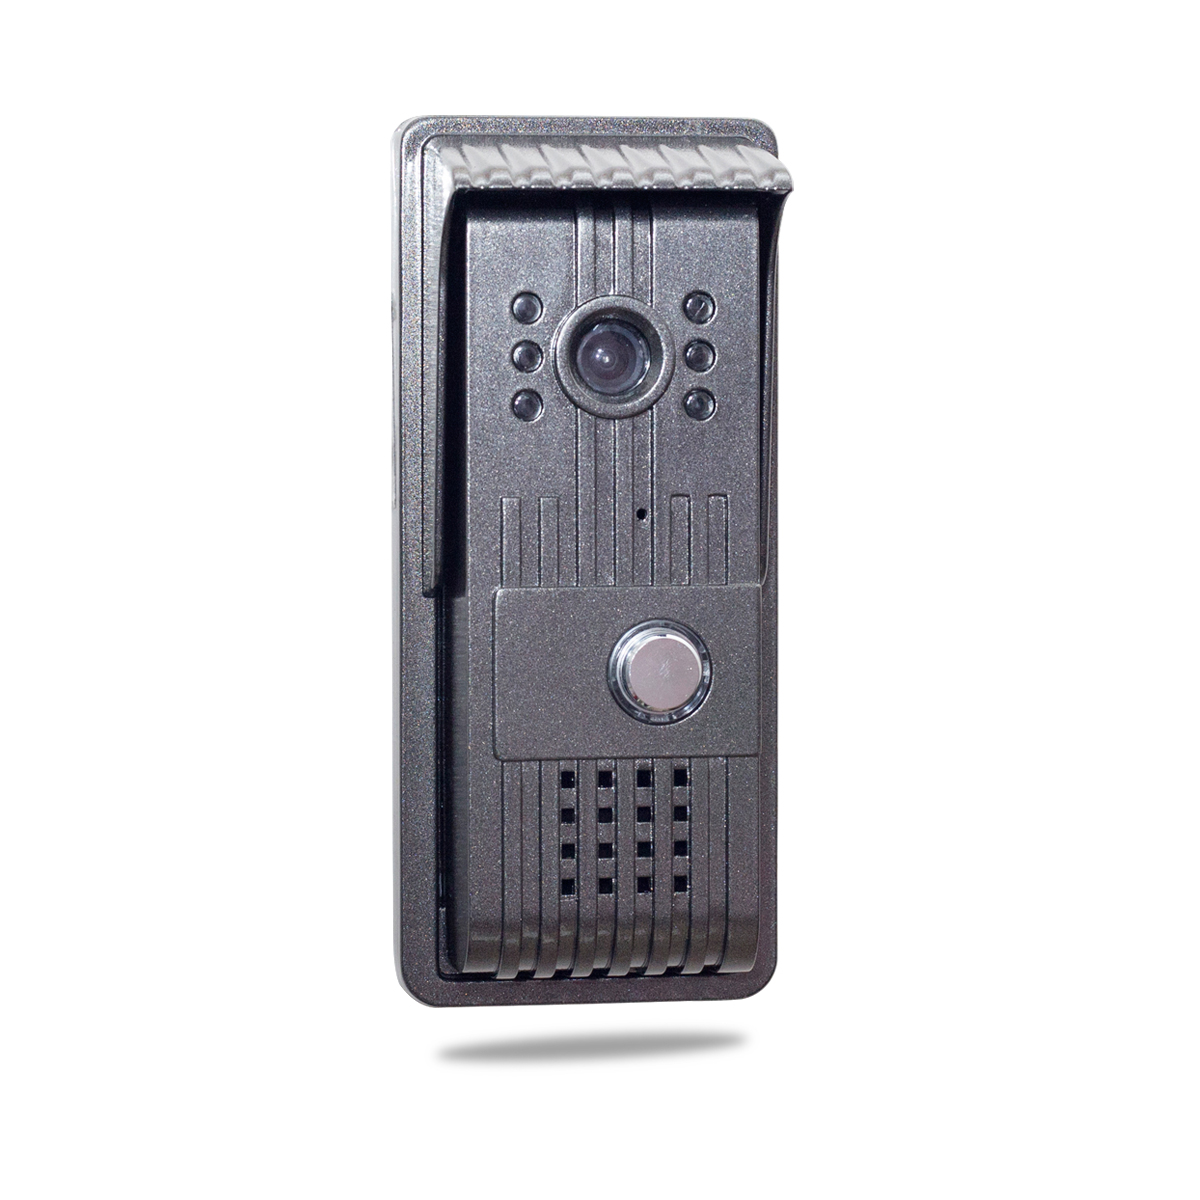 AlyBell HD camera intercom night vision wifi video doorbell